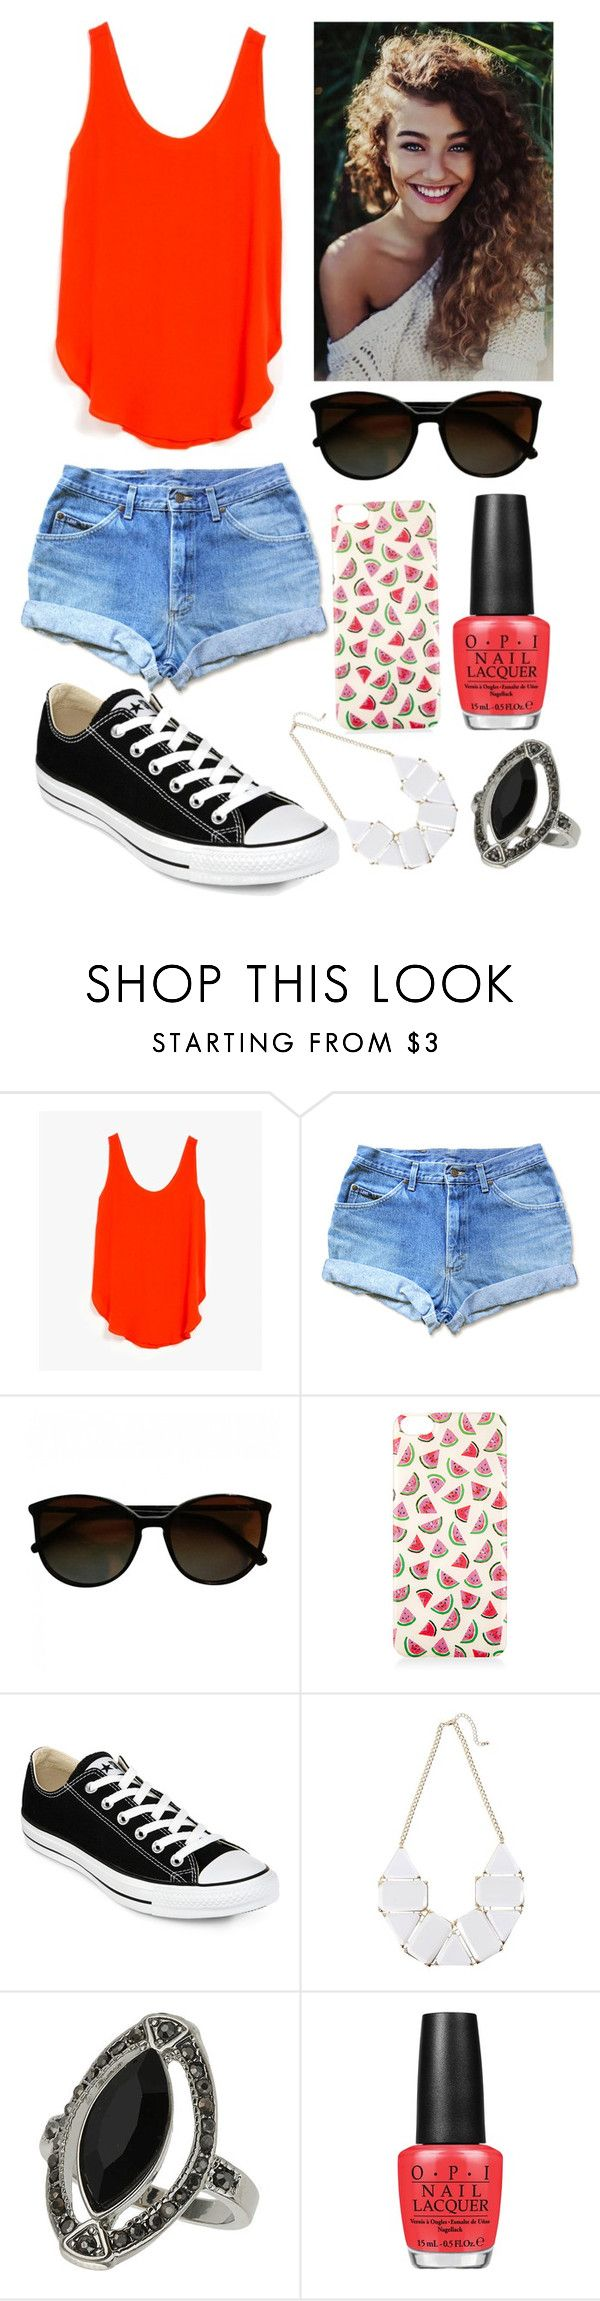 """""""Une tenue d'été qui a du pep's"""" by choco-lat ❤ liked on Polyvore featuring Azalea, Chanel, Accessorize, Converse, Topshop and OPI"""